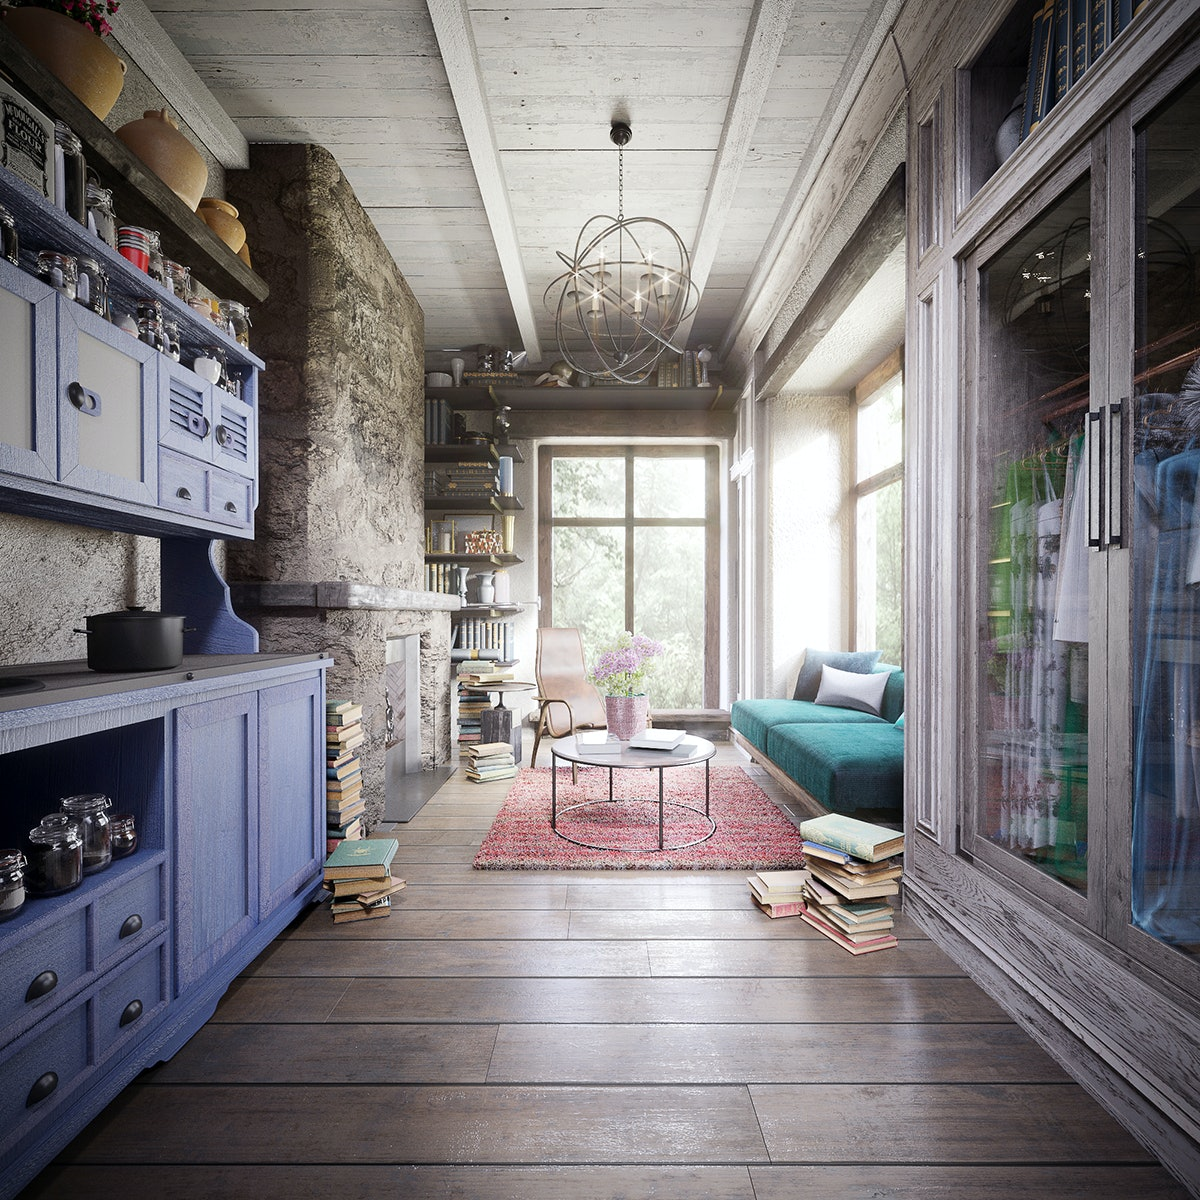 A Belle-inspired Disney tiny house has hardwood floors, piles of books,  a blue kitchen, and a bookshelf.